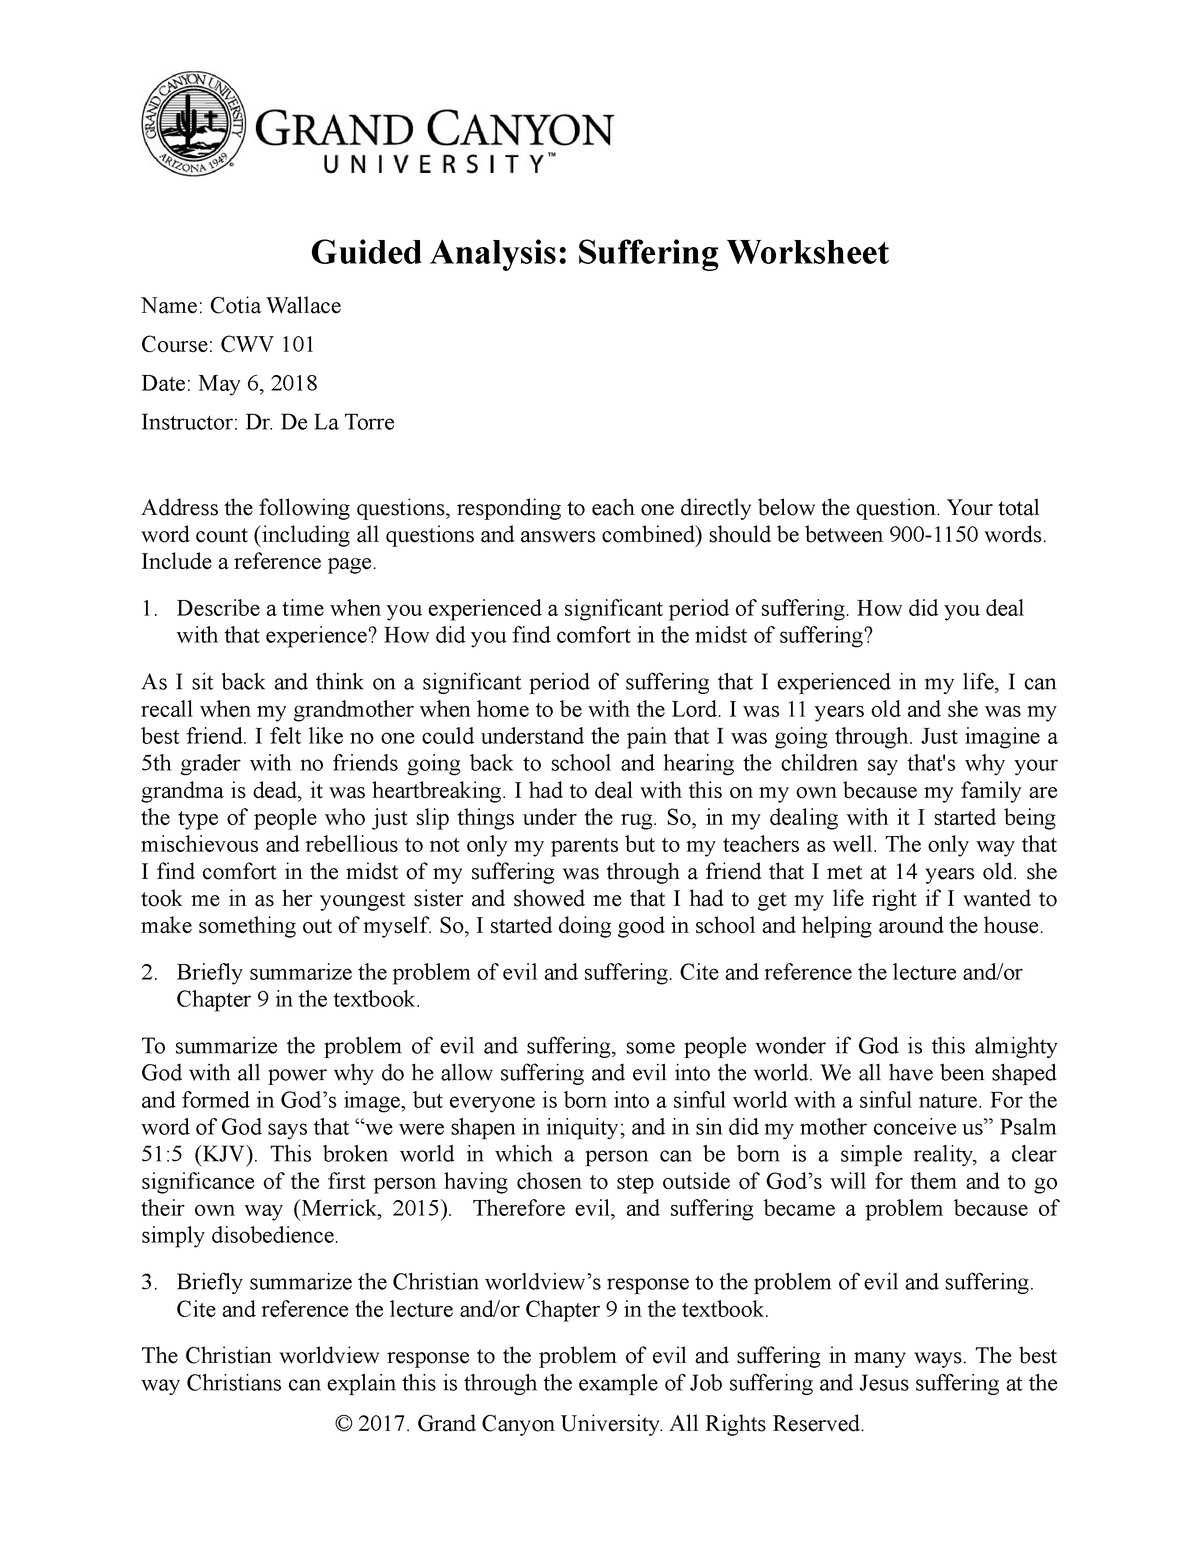 CWV 101 RS T6Guided Analysis Suffering Worksheet - CWV 101